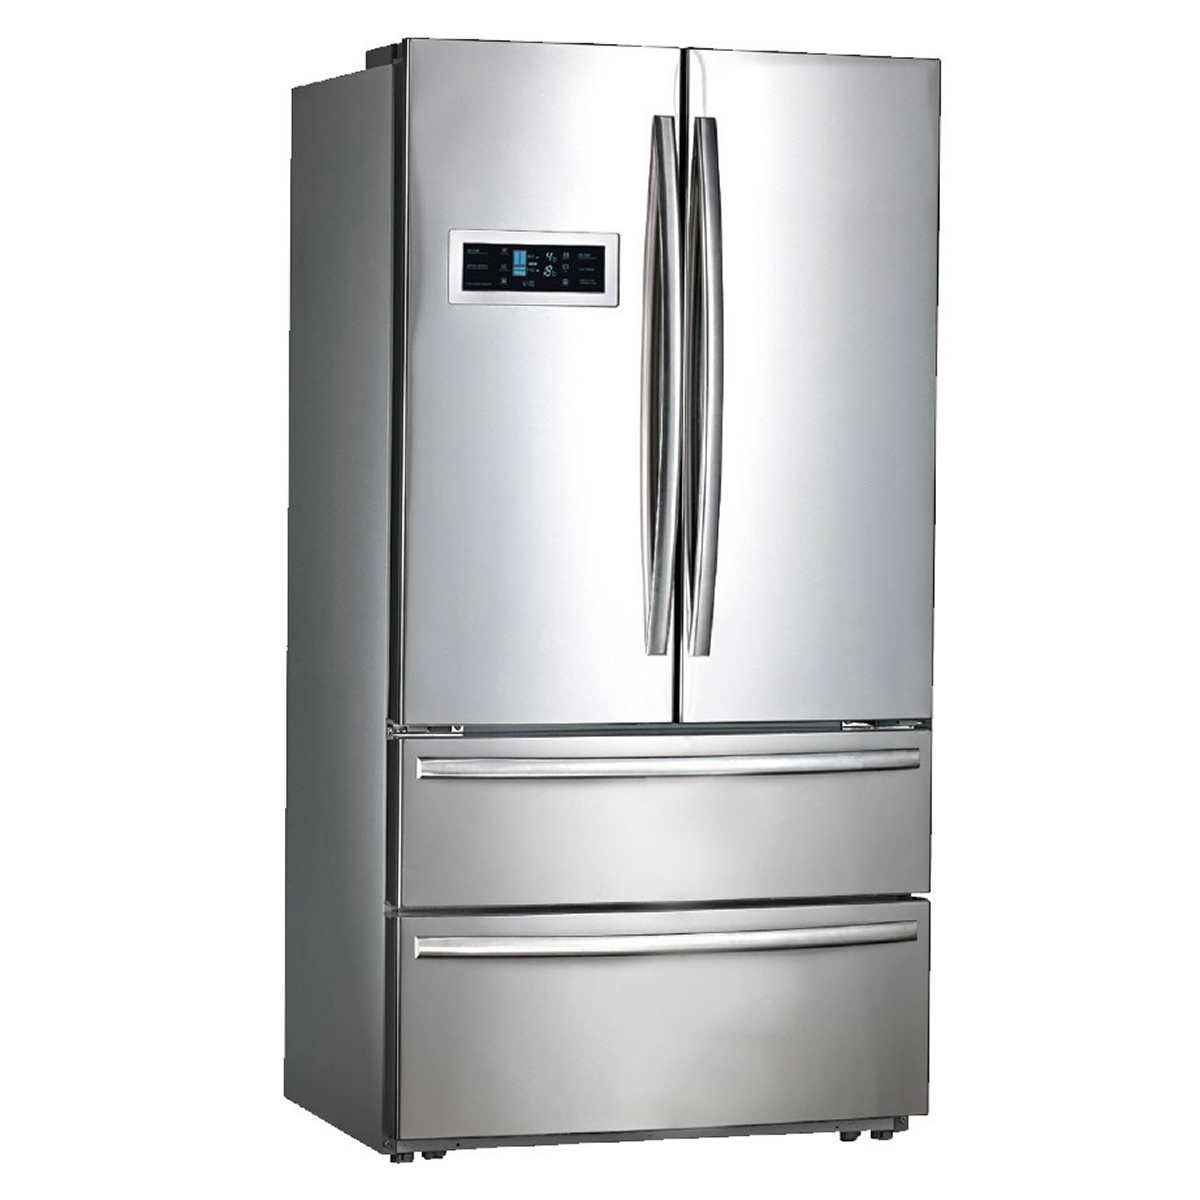 Whirlpool white ice costco canada - Fulgor Milano 600 Series Counter Depth 20 8 Cu Ft Stainless Steel French Door